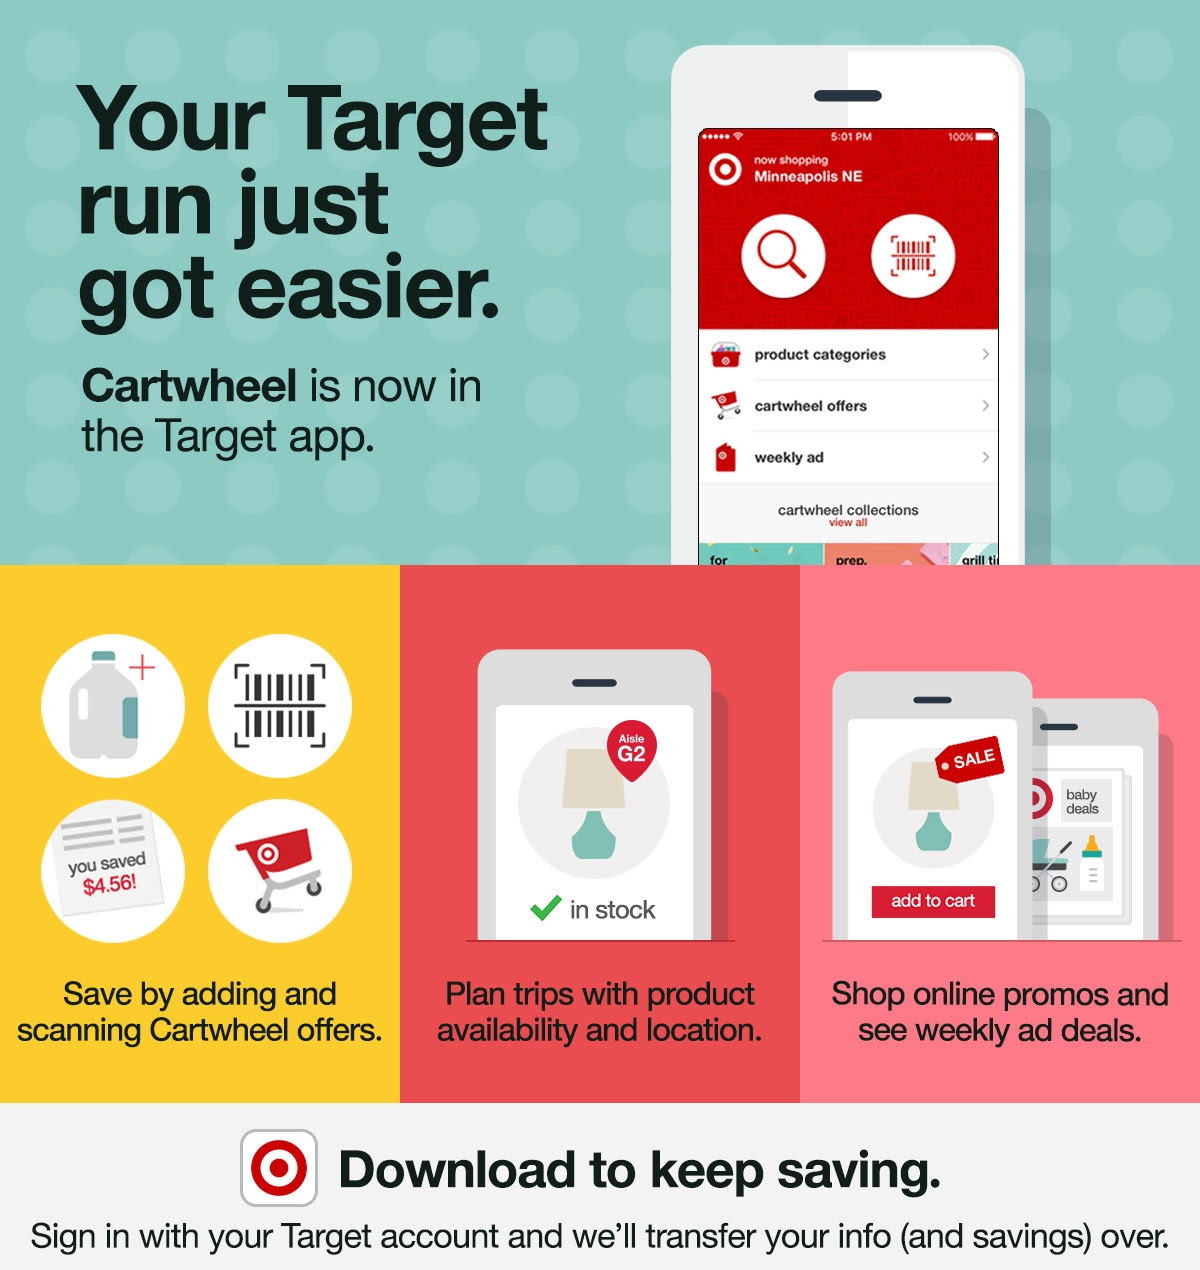 Your Target run just got easier. Cartwheel is now in the Target app. Save by adding and scanning Cartwheel offers. Plan trips with product availability and location. Shop online promos and see weekly ad deals. Download to keep saving. Sign in with your Target account and we'll transfer your info (and savings) over.